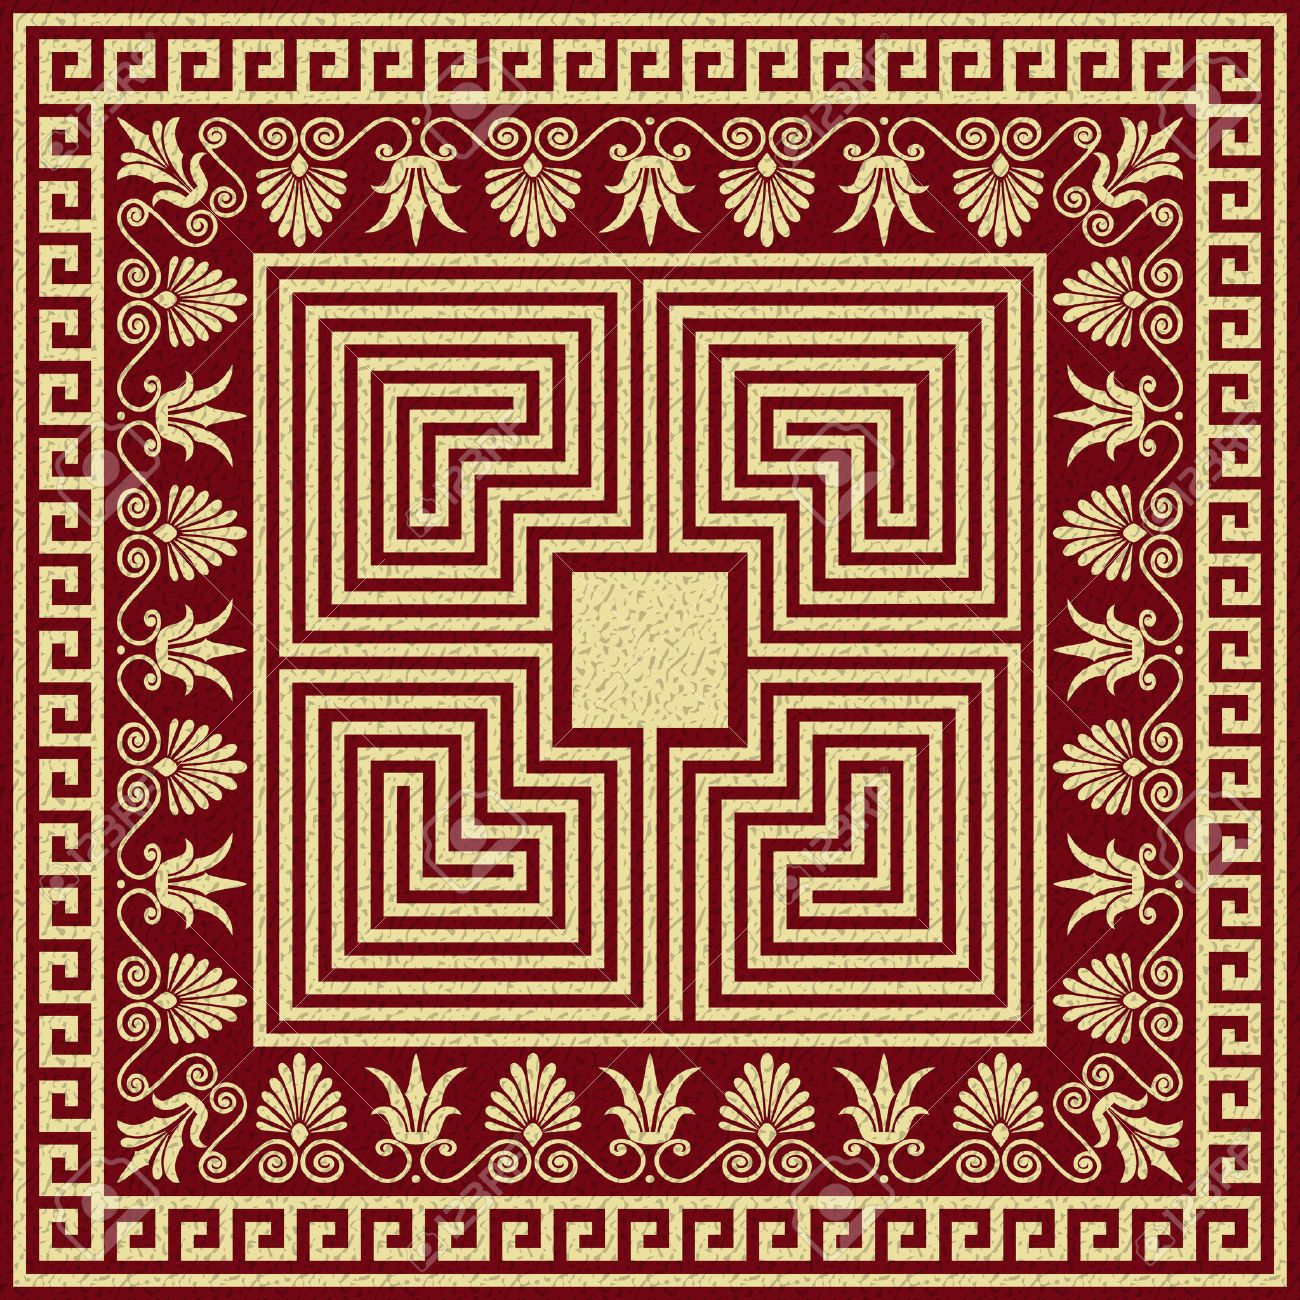 Vector set Traditional vintage golden square and round Greek ornament Meander and floral pattern on a red background - 23861110